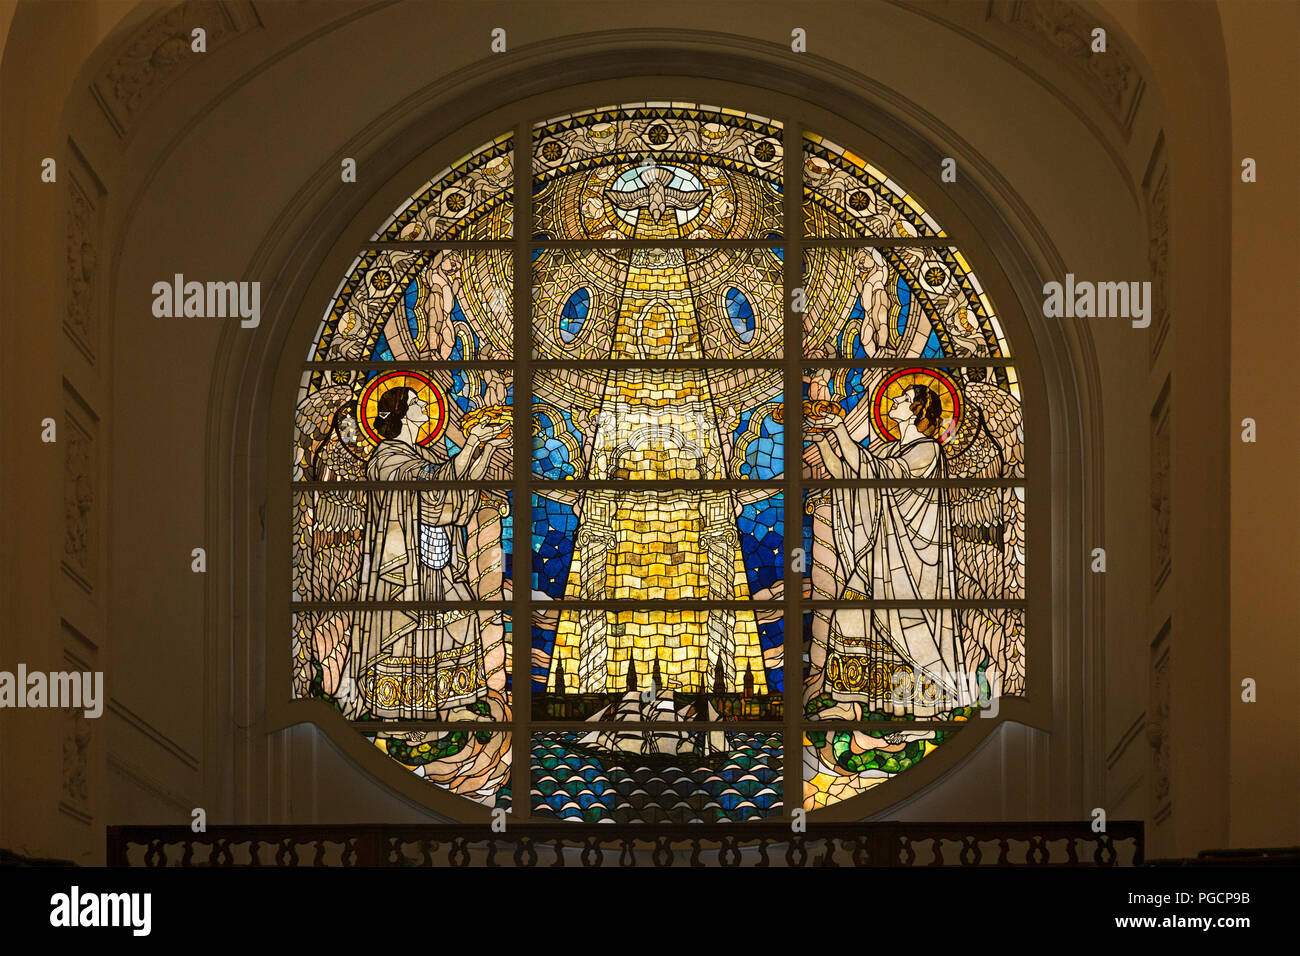 Fenster, Michaeliskirche (Michel), Hamburg, Deutschland | window, St. Michael´s Church (Michel), Hamburg, Germany - Stock Image